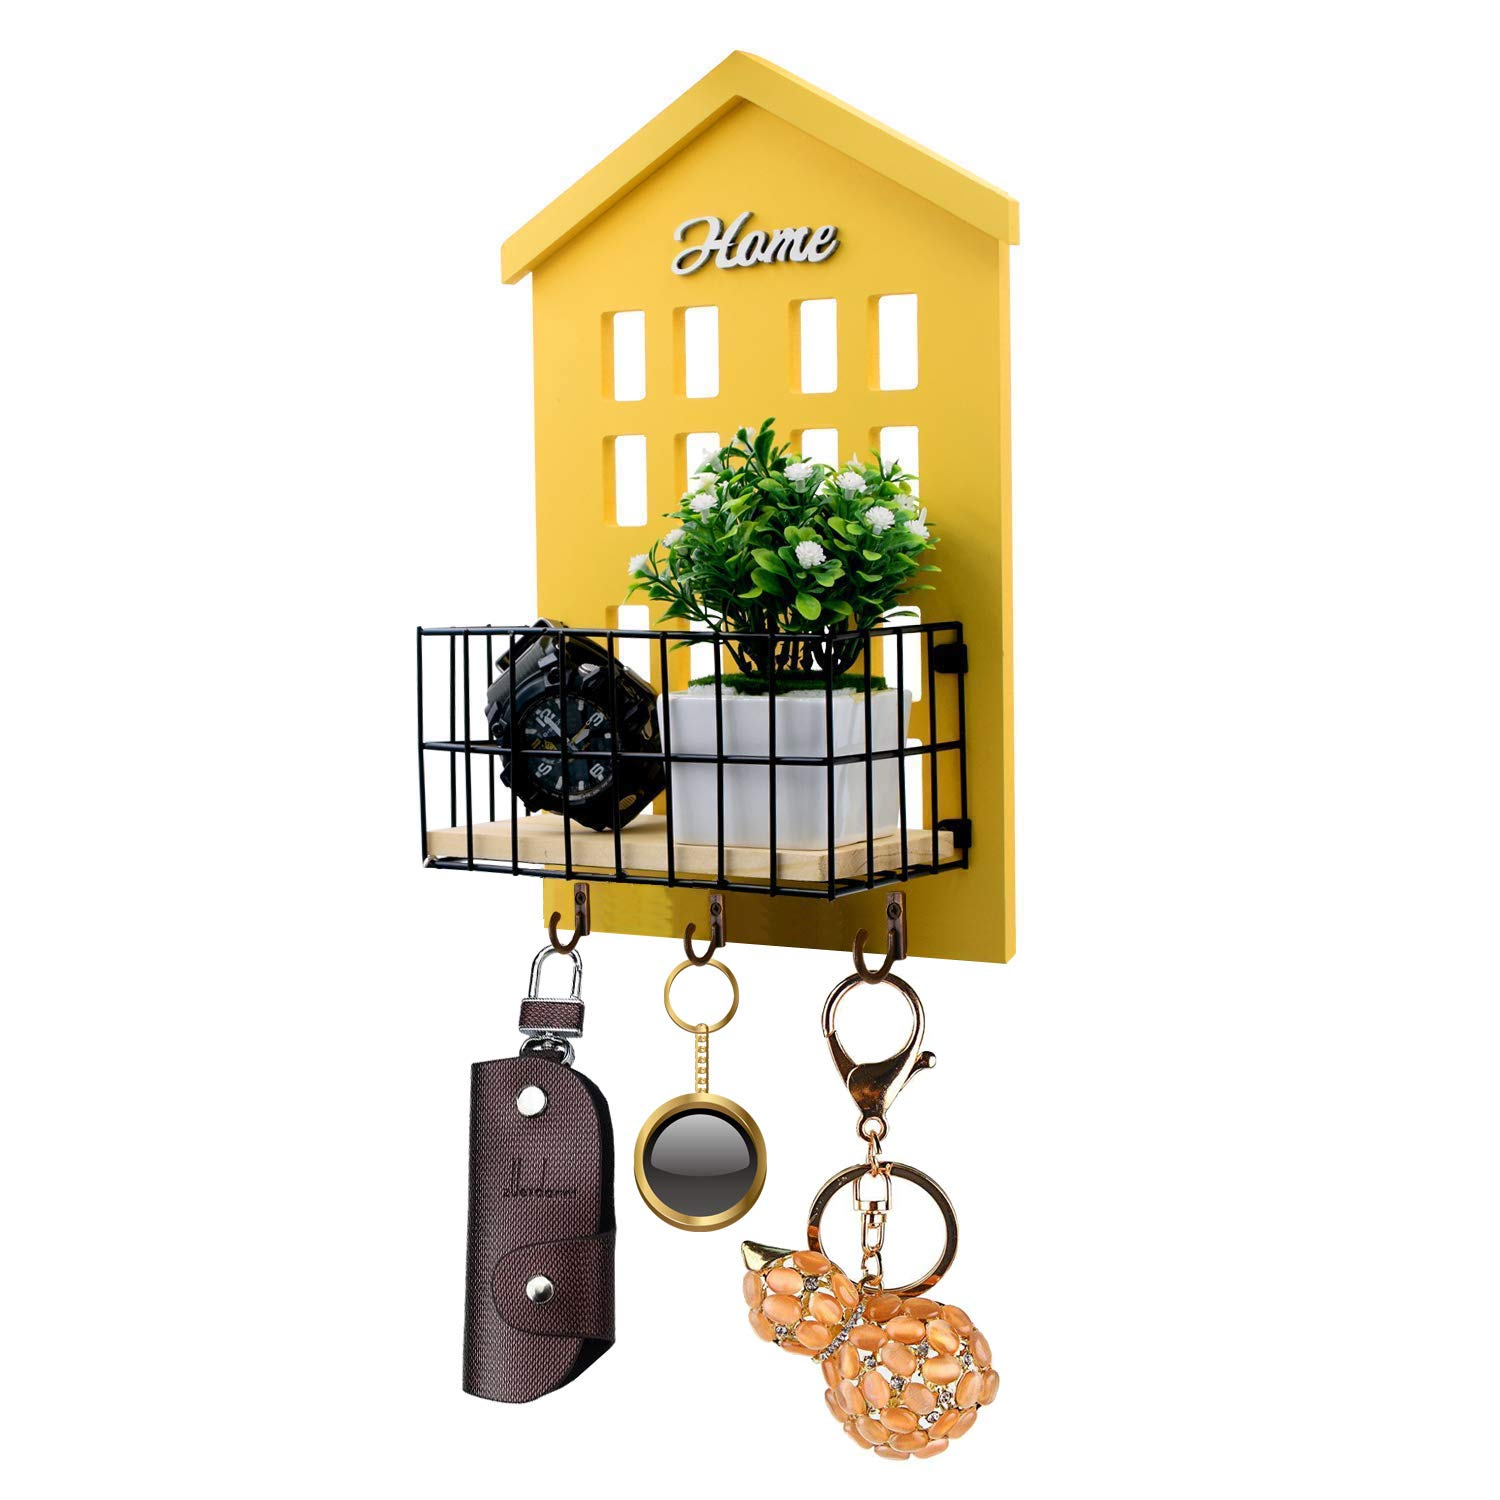 Key Holder -HENGSHENG Wood Wall Mounted.Mail, Letter Holder, Key Rack Organizer for Entryway, Kitchen, Office - Yellow(Upgraded to 3 Strong Hooks)